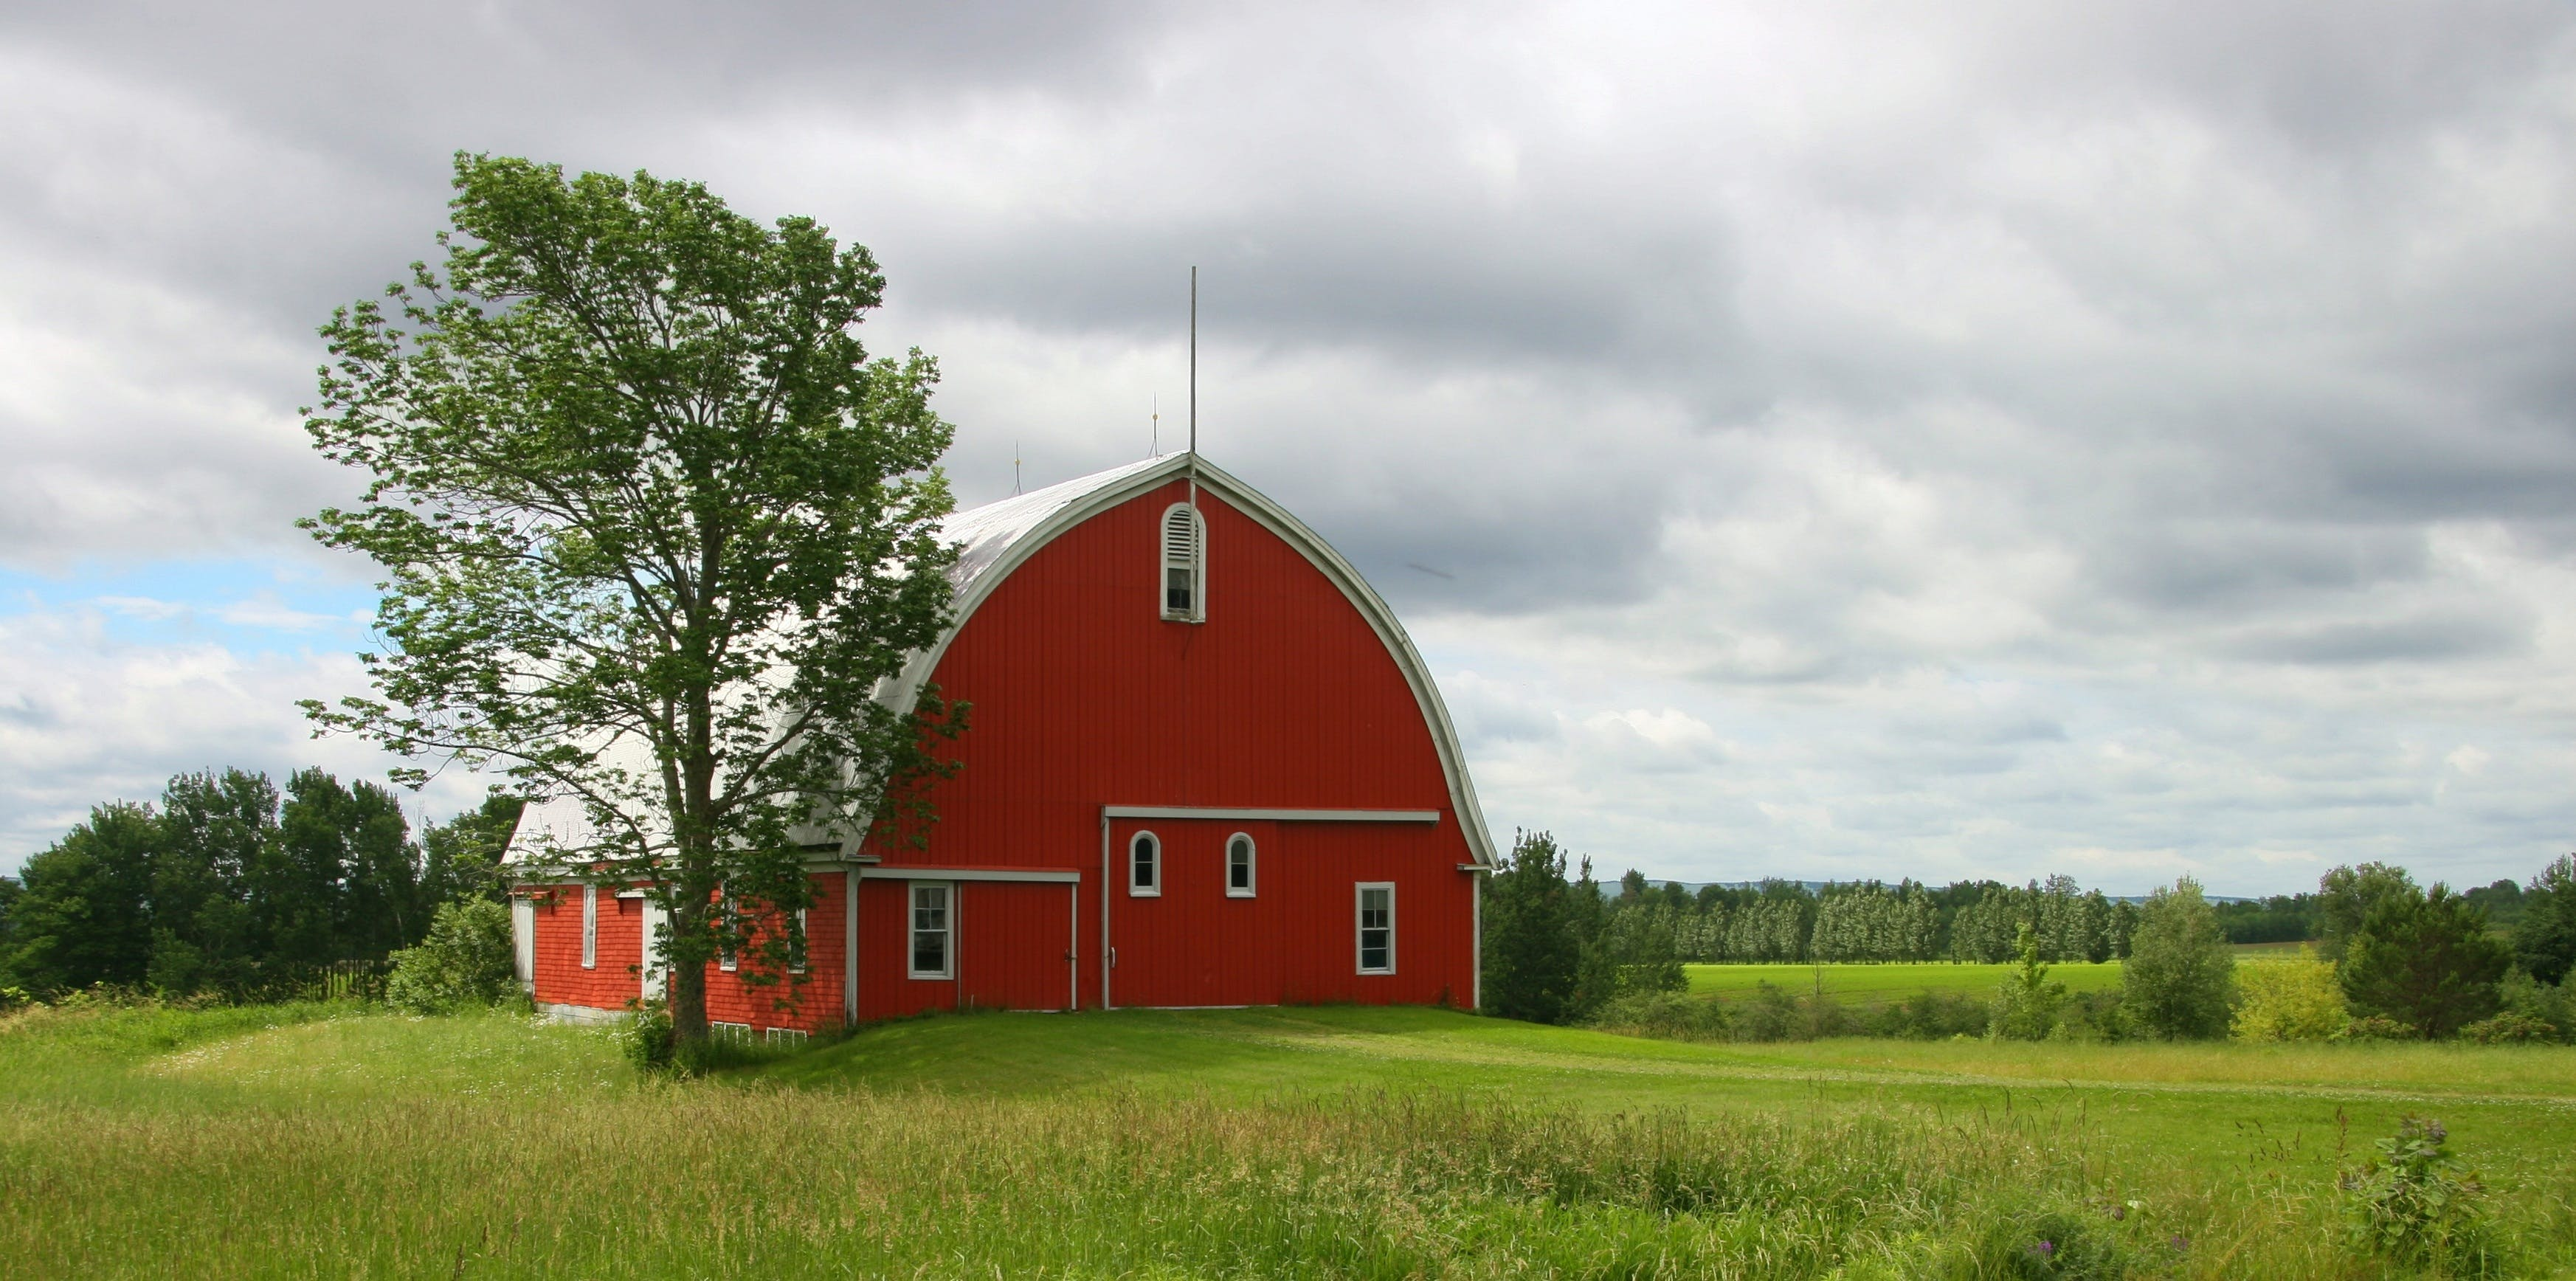 agriculture, architecture, barn